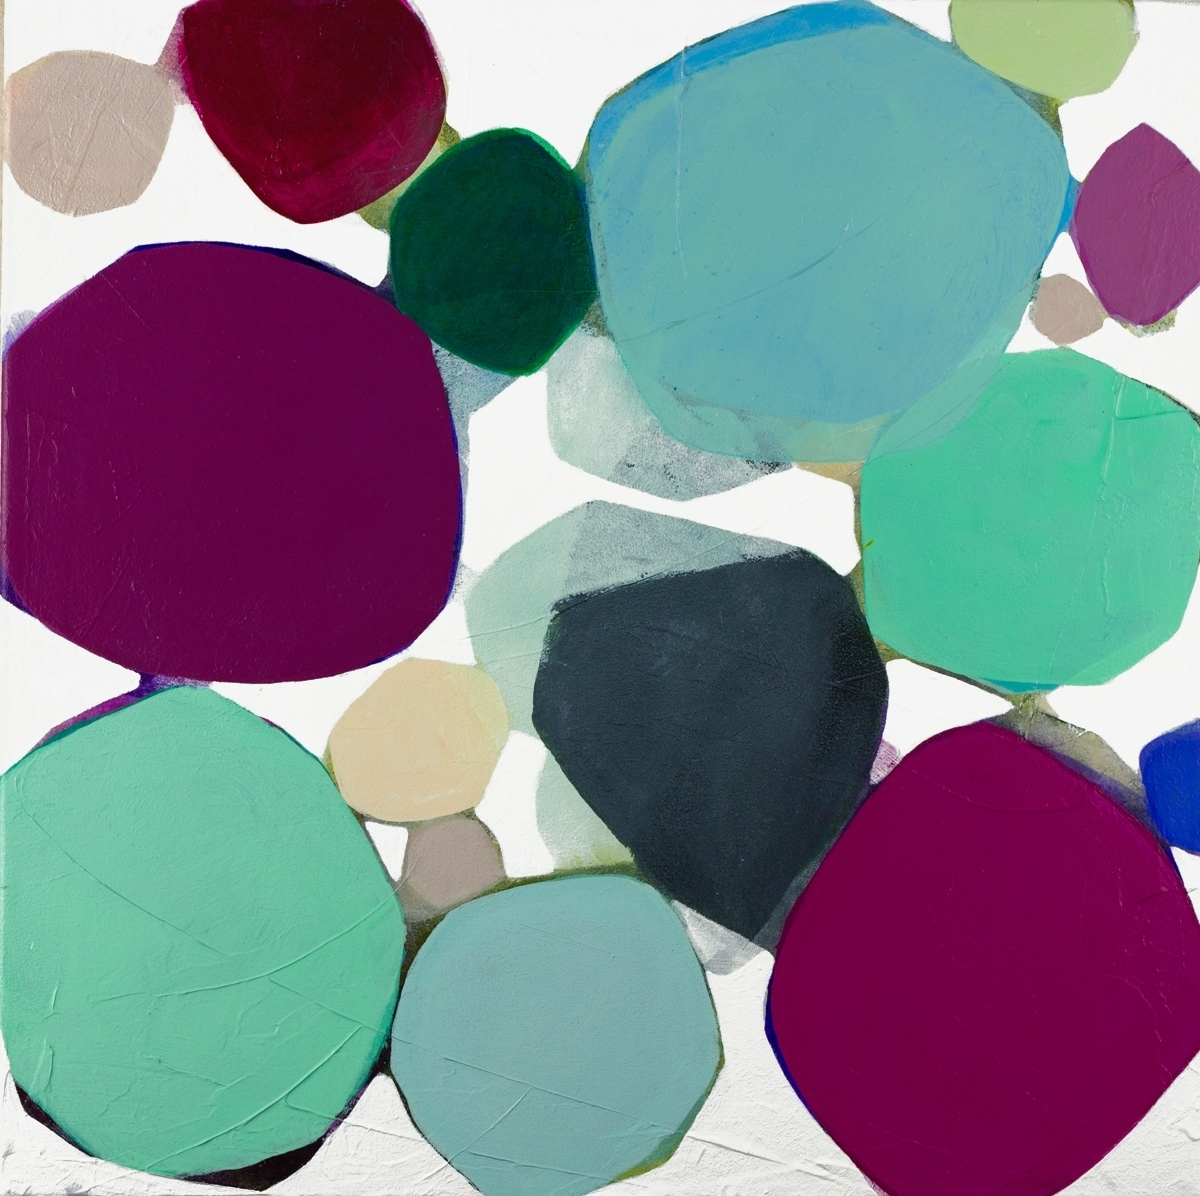 Seaglass I (large view)